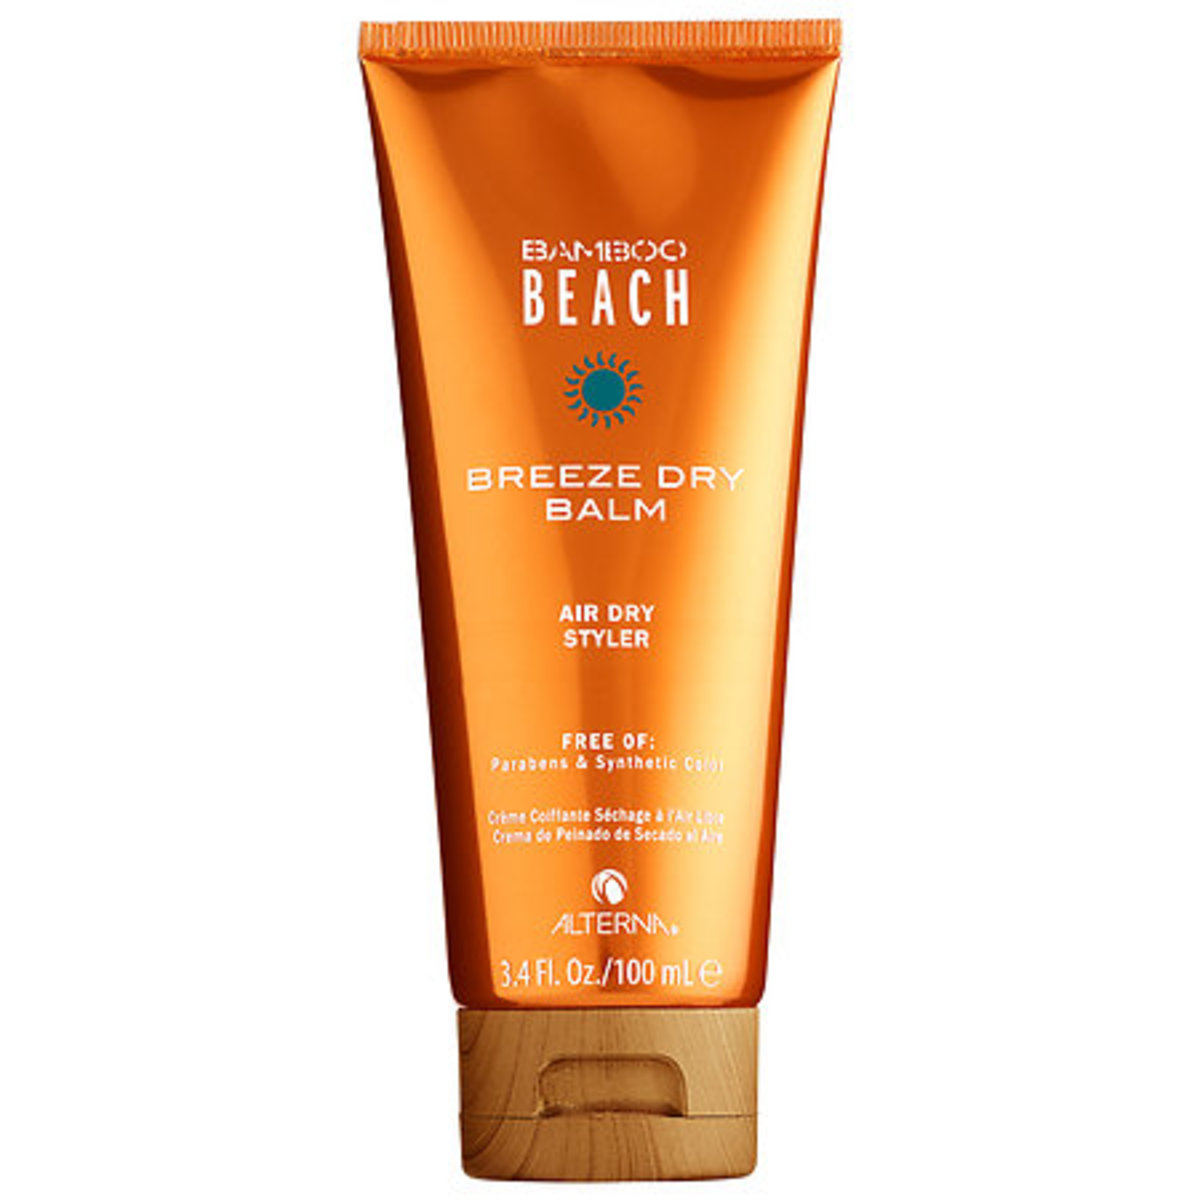 Alterna Bamboo Beach Ocean Waves Breeze Dry Balm, $22, available at Sephora.